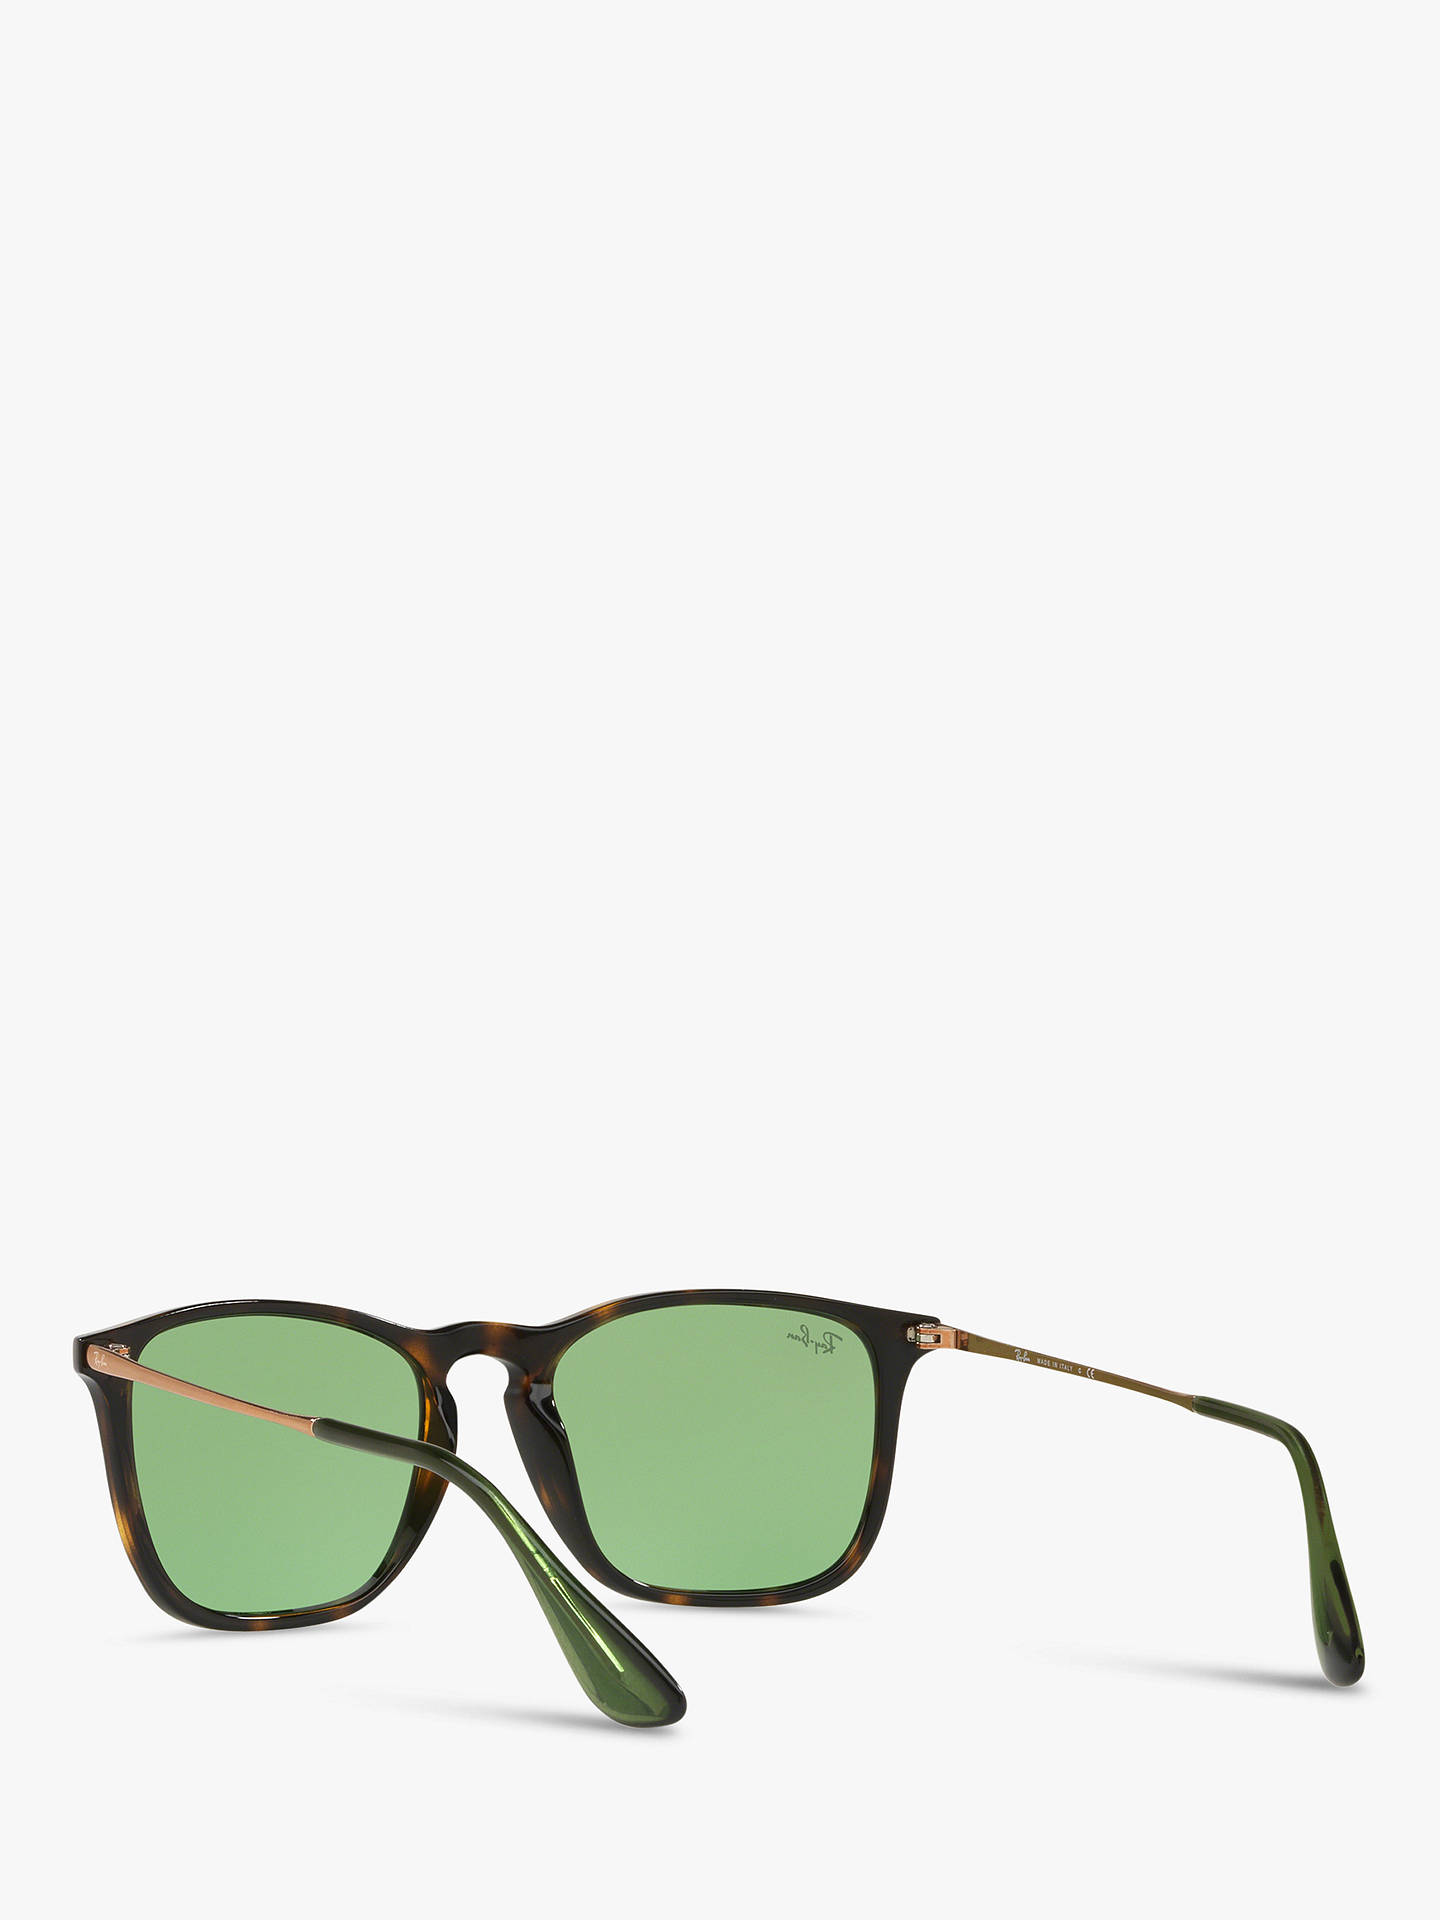 BuyRay-Ban RB4187 Men's Chris Square Sunglasses, Clear/Tan/Green Gradient Online at johnlewis.com